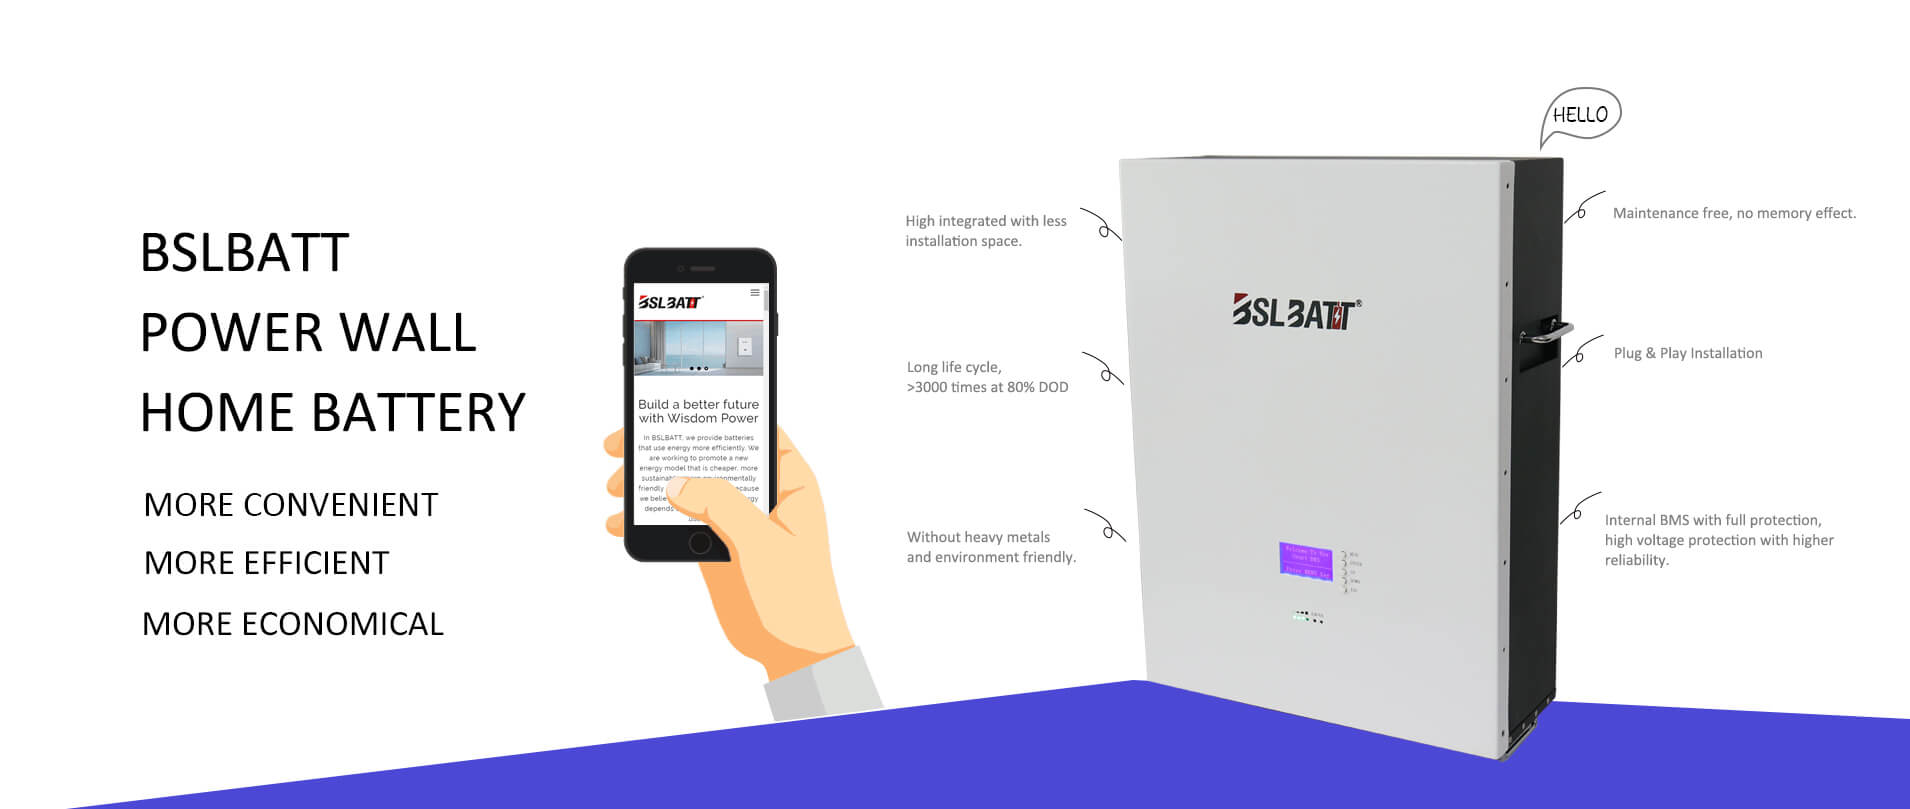 PowerWall Home Battery supplier